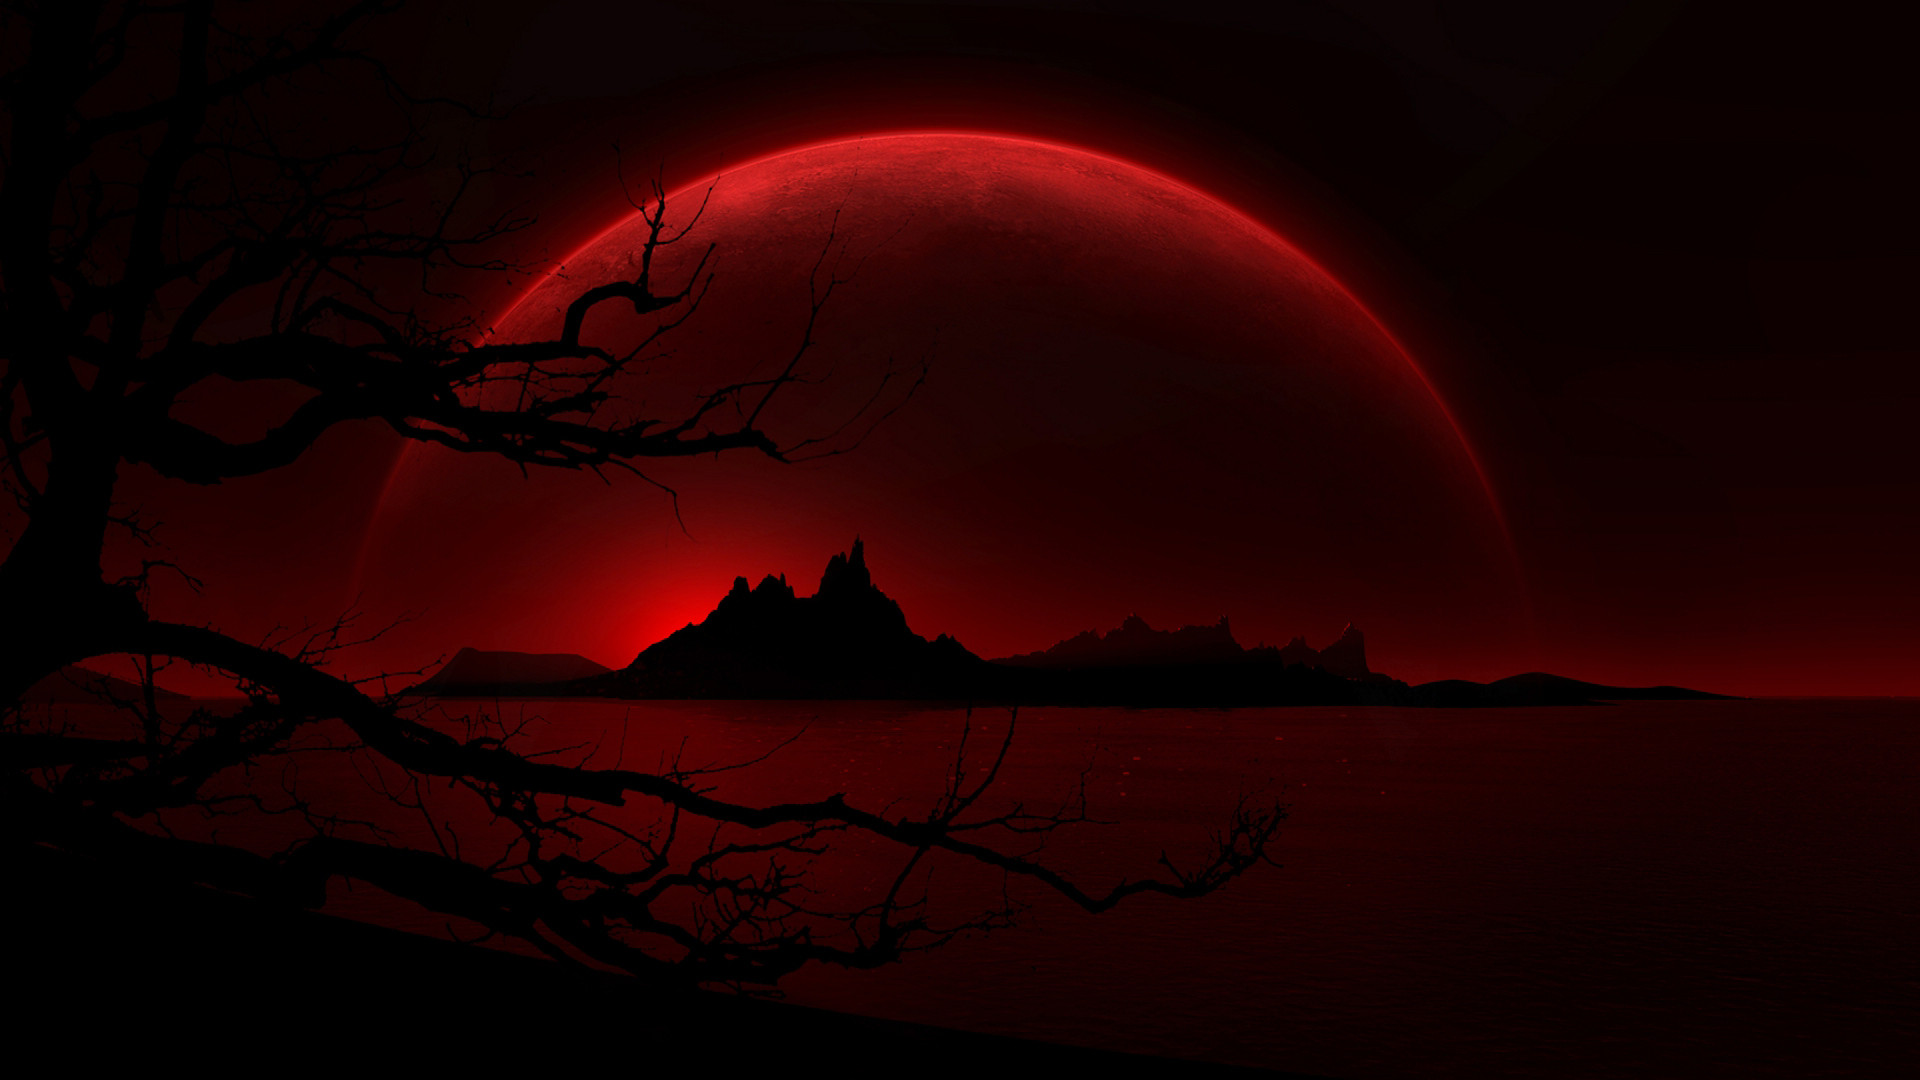 blood red moon wallpaper 55 images